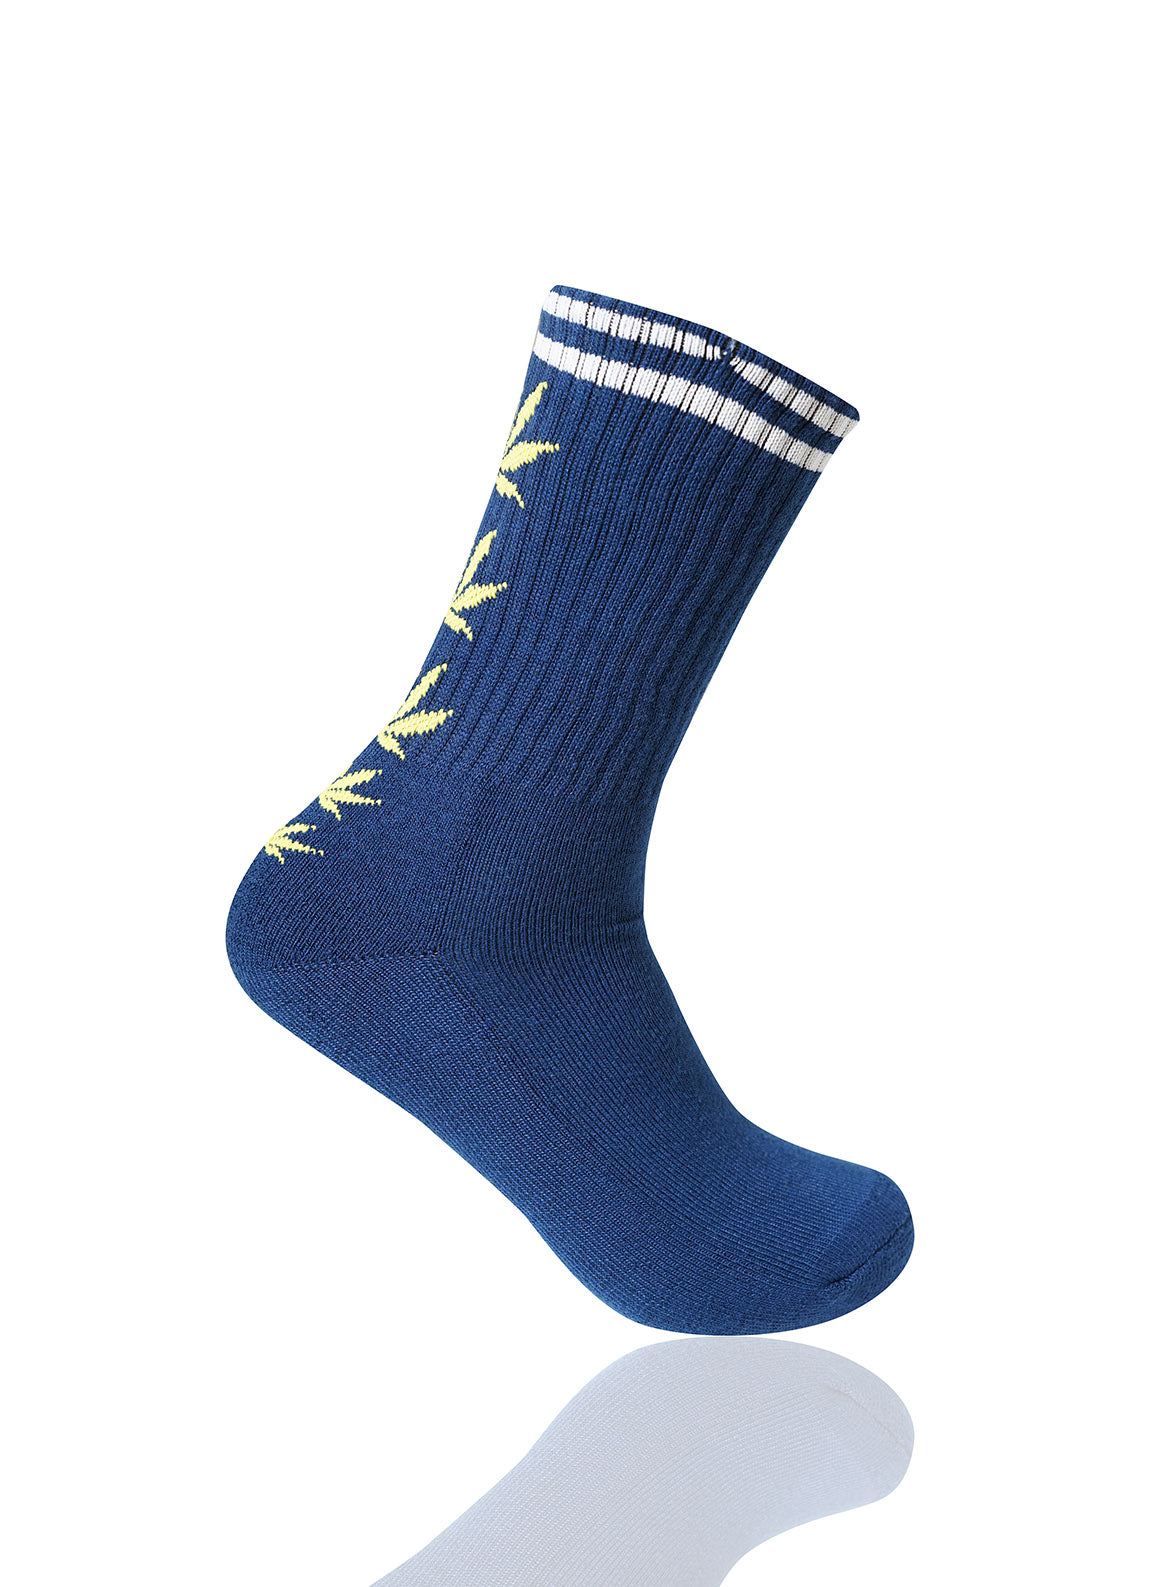 NAVYYELLOW Mad Toro 5 Leaves Graphic Socks - URBANCREWS